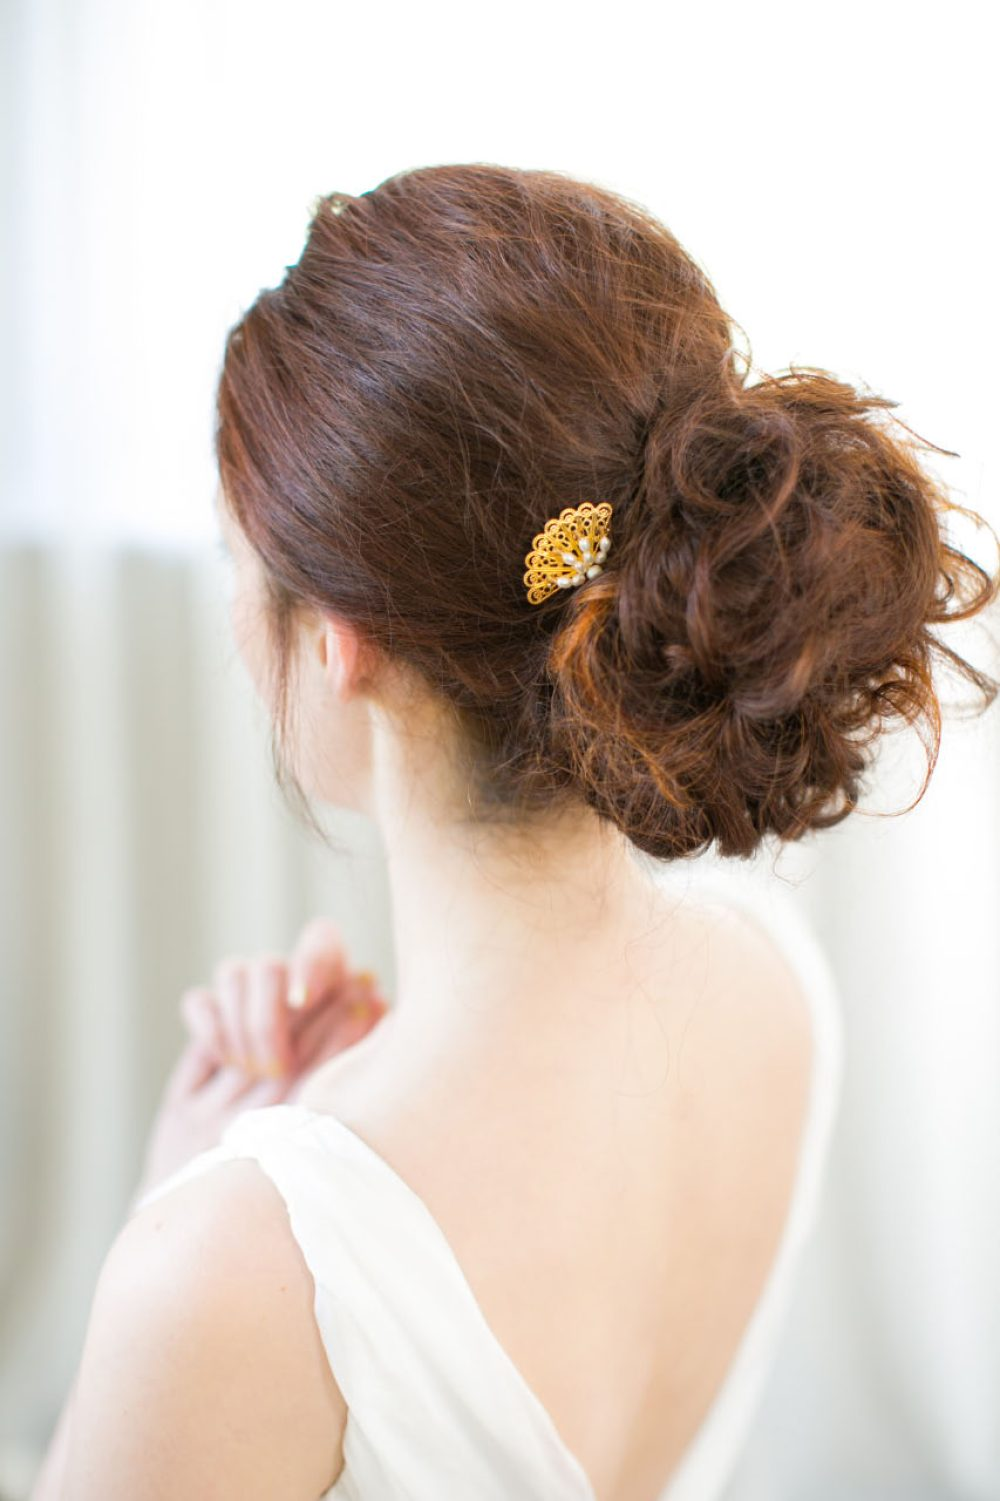 victoria-millesime-gilded-age-hair-pin, Image by Anneli Marinovich